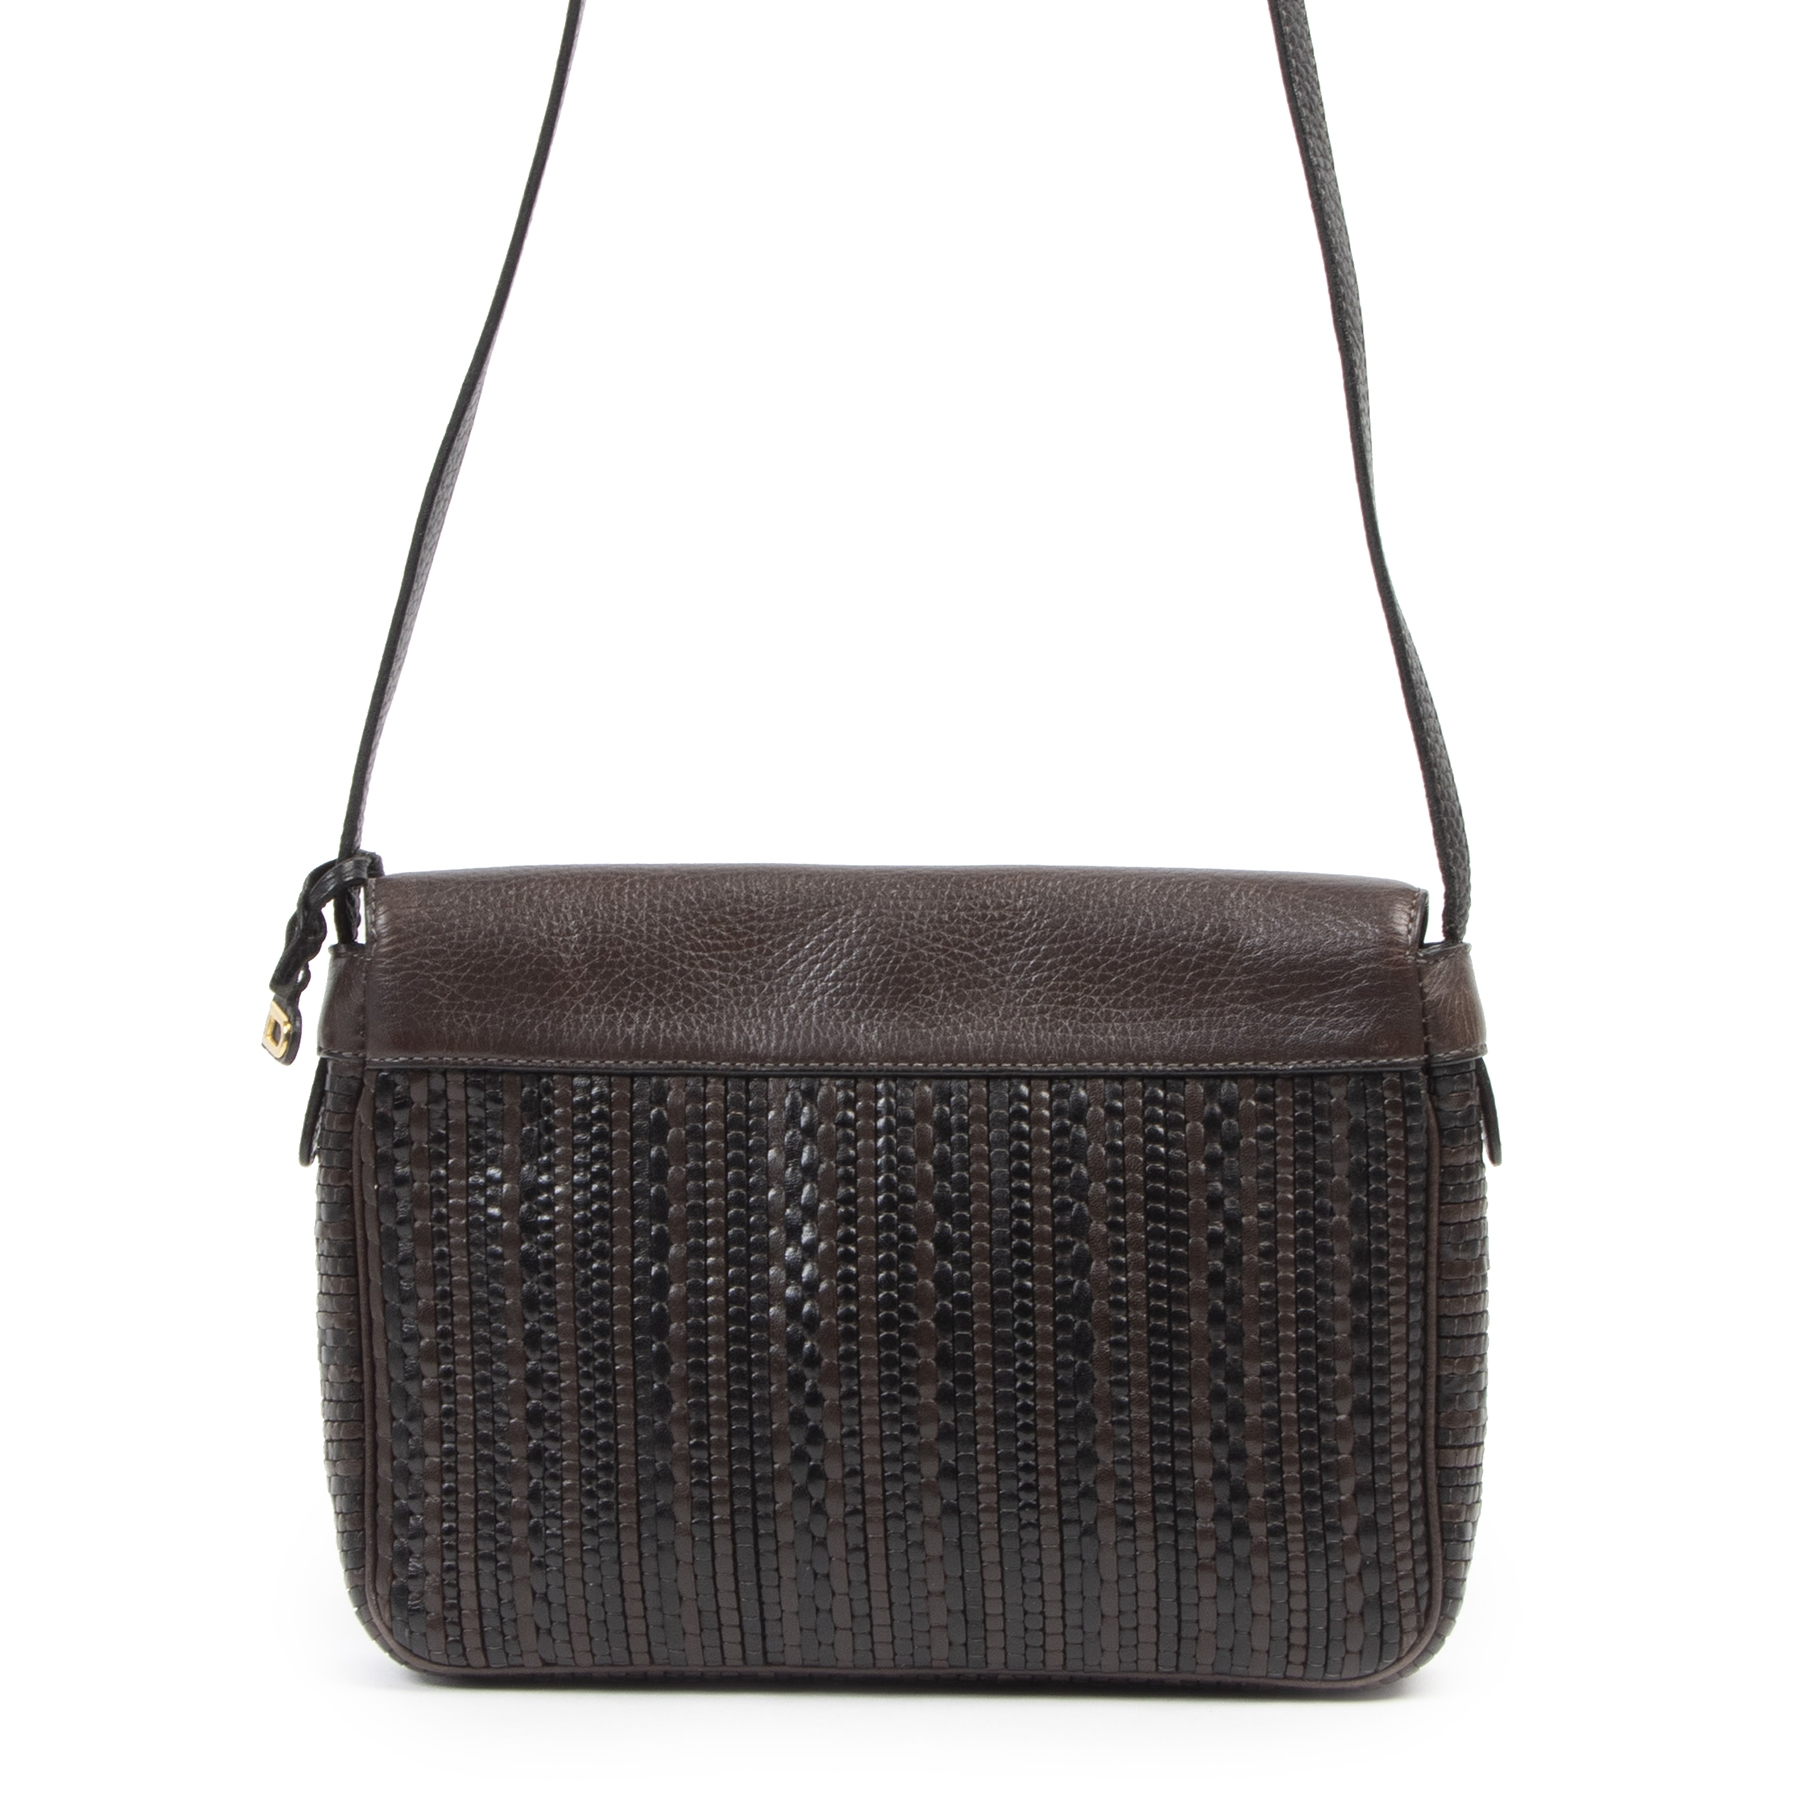 Authentieke tweedehands vintage Delvaux Toile De Cuir Crossbody Bag koop online webshop LabelLOV